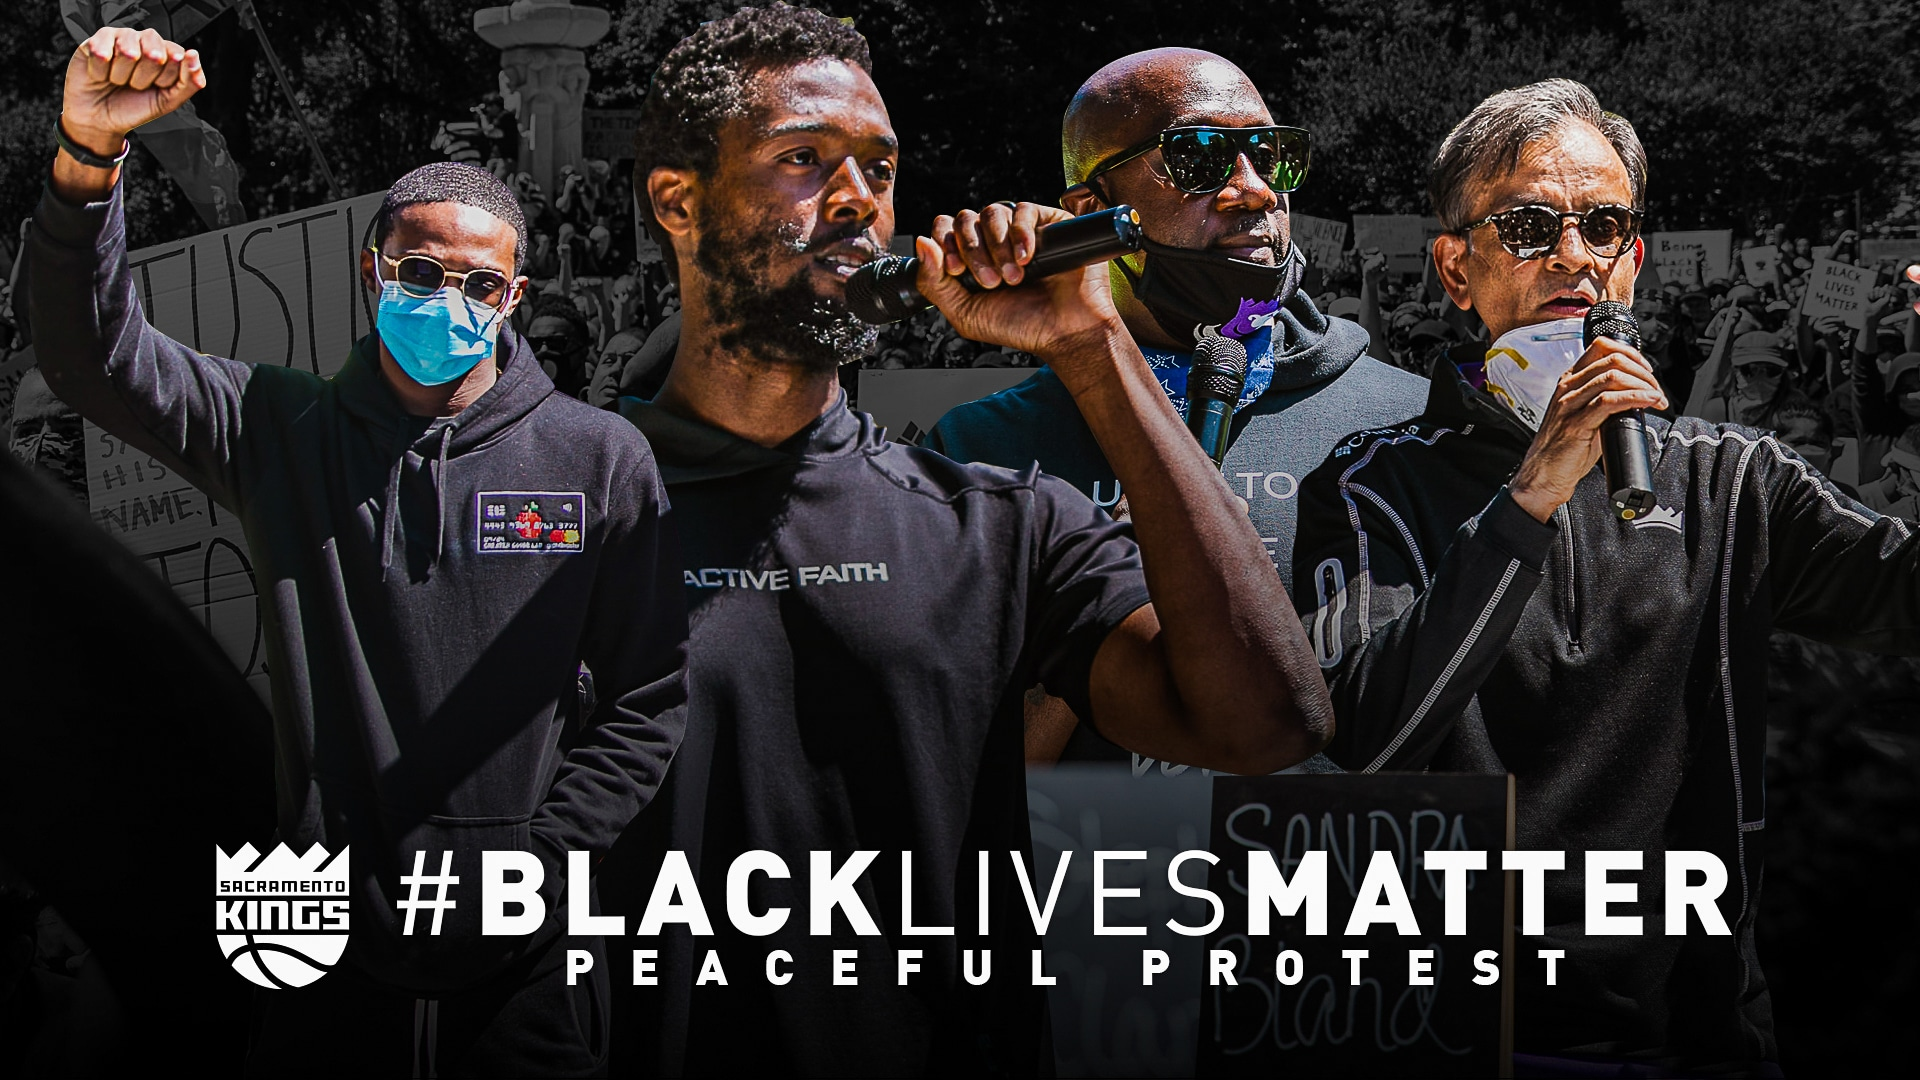 Kings Join Black Lives Matter Peaceful Protest